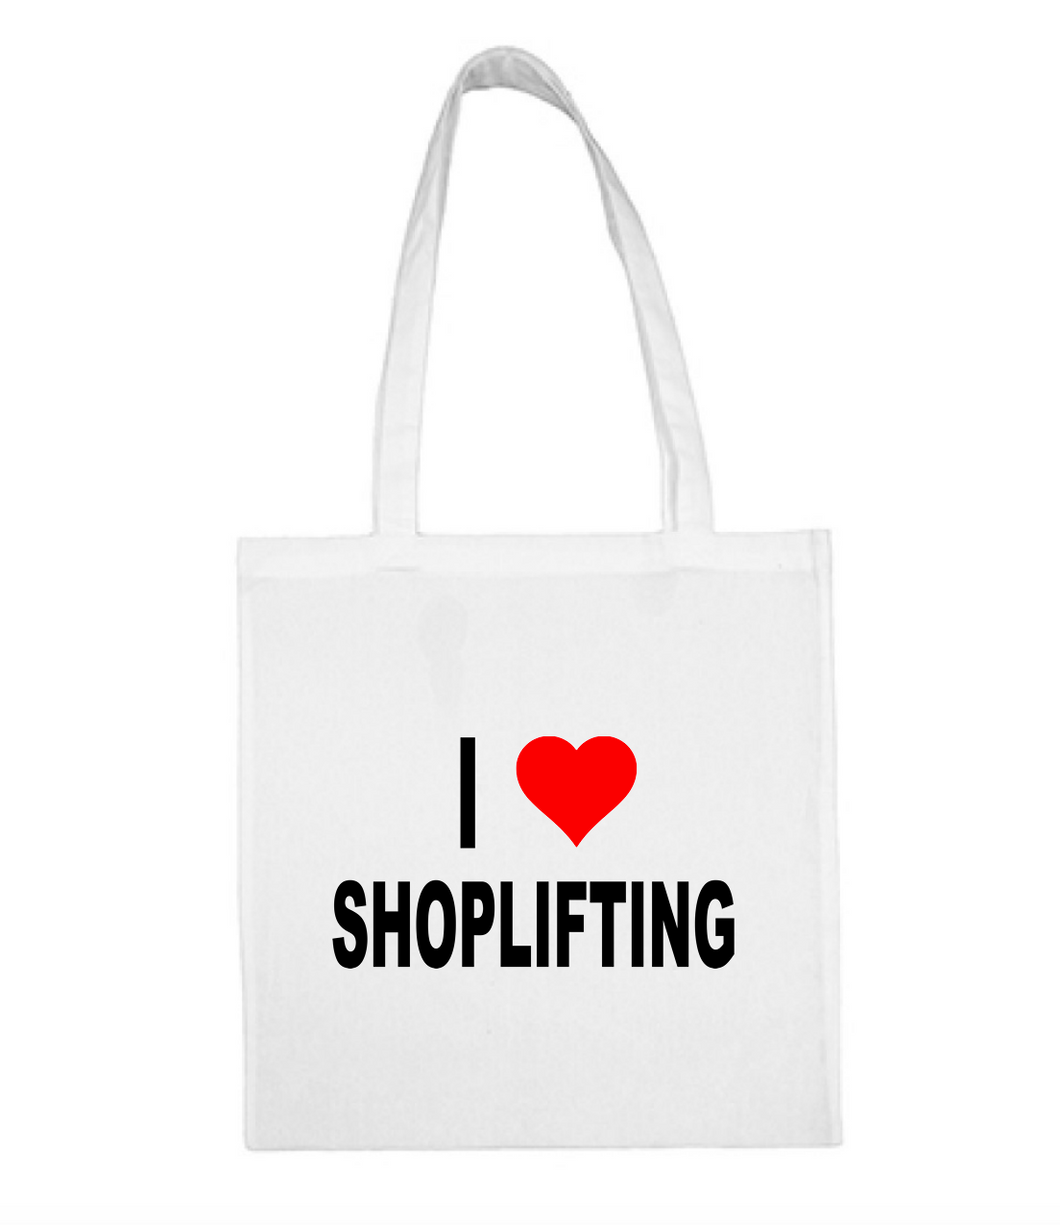 I ❤️ SHOPLIFTING tote bag